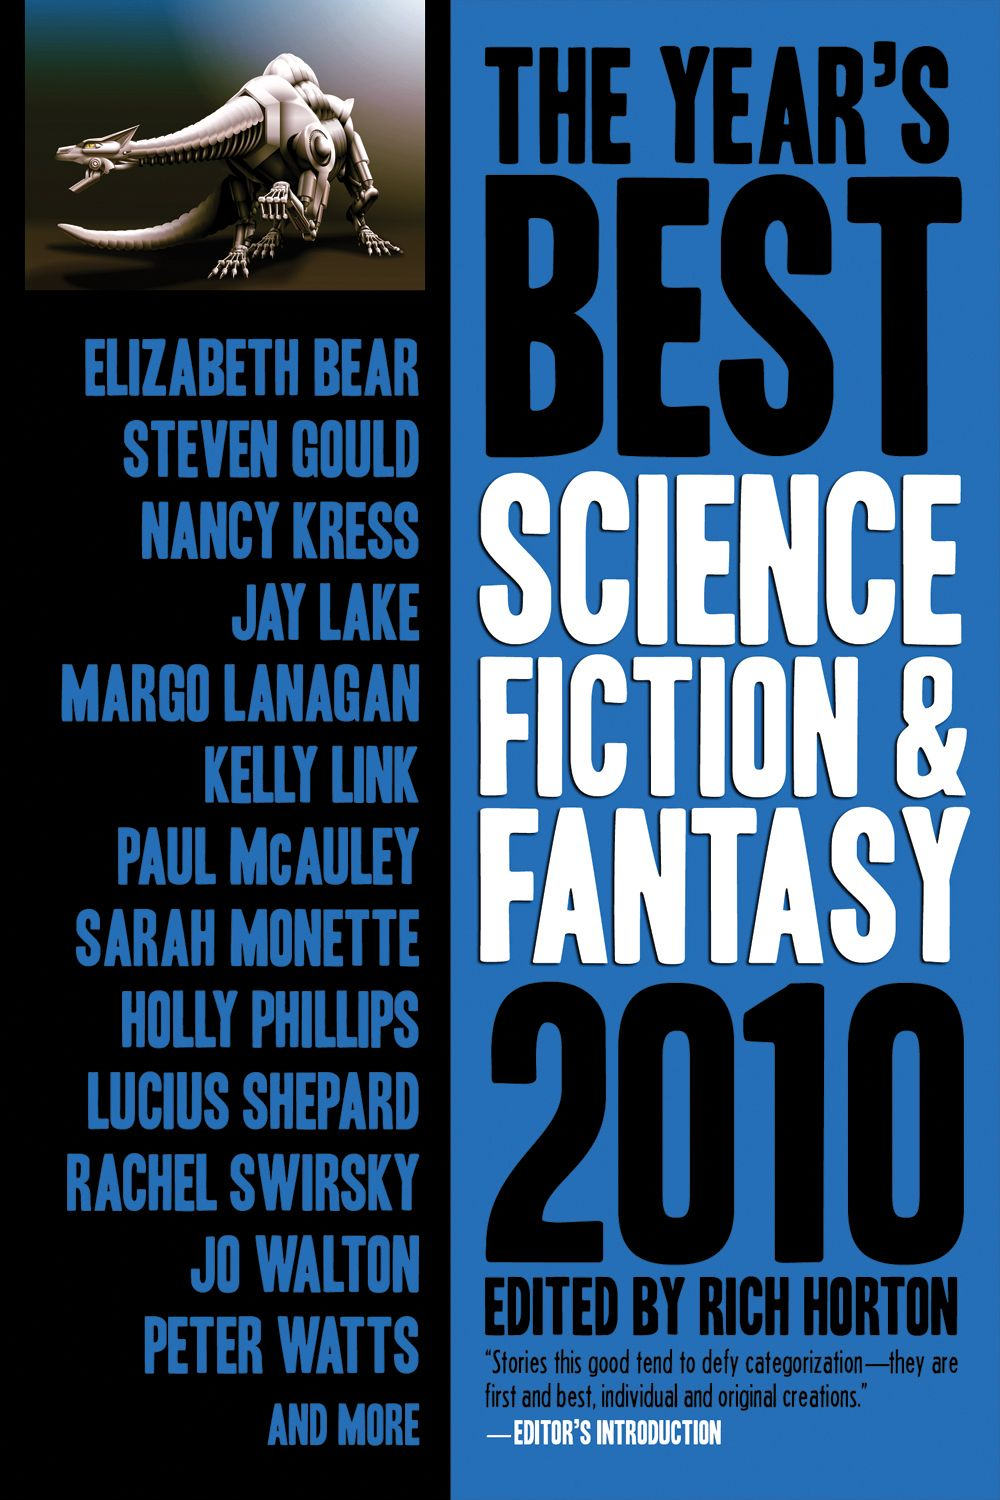 The Year's Best Science Fiction & Fantasy 2010 Edition By: Rich Horton